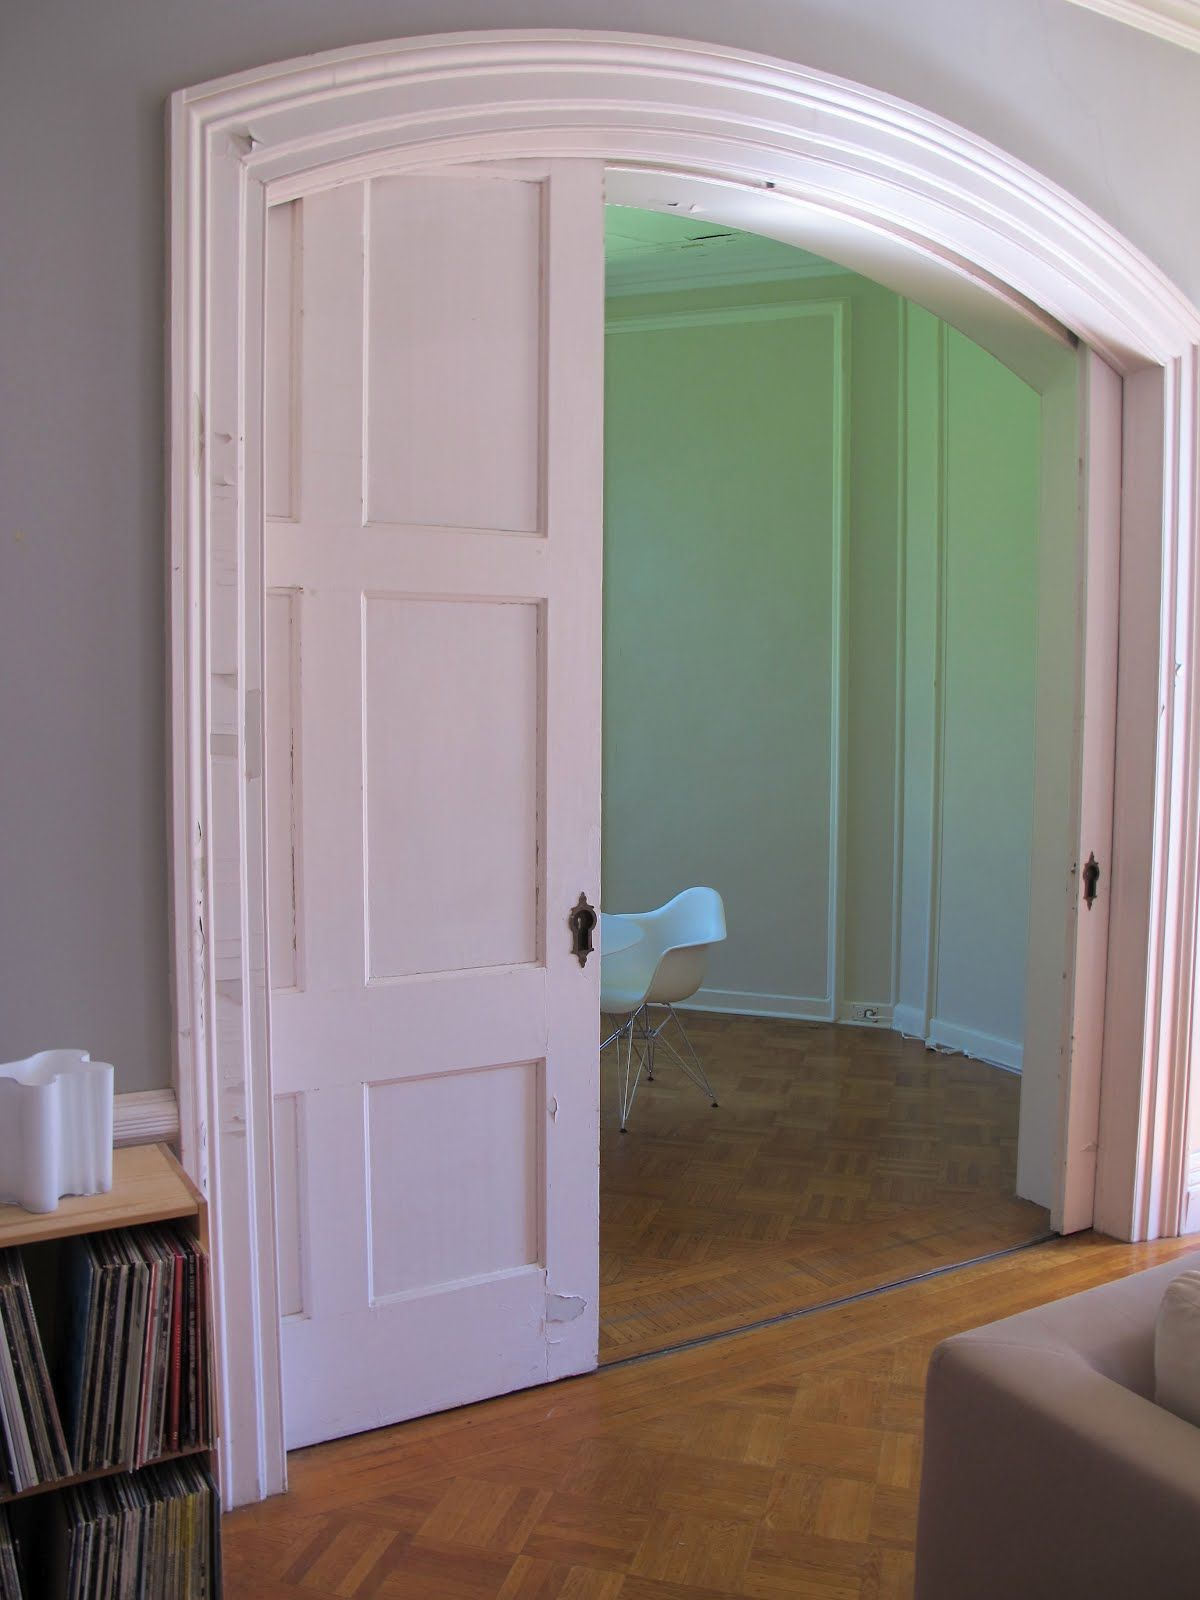 Graceful Arched Doorway Pocket Doors Architecture